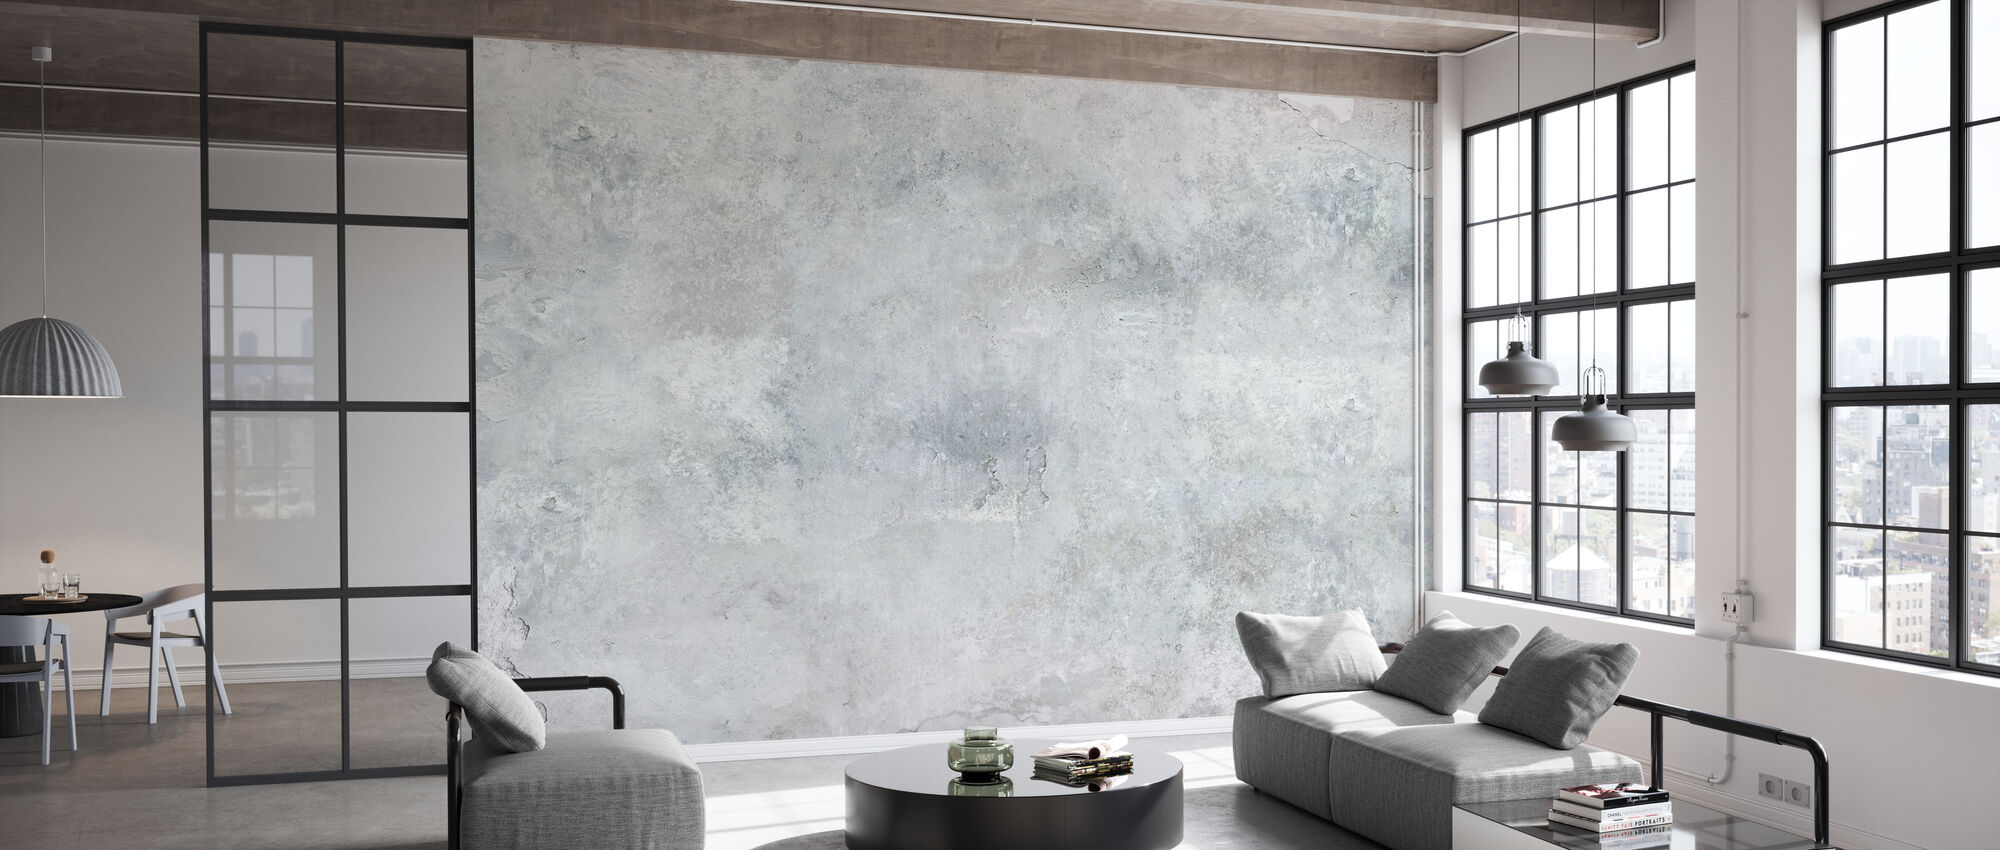 Torned Concrete Wall - Wallpaper - Office